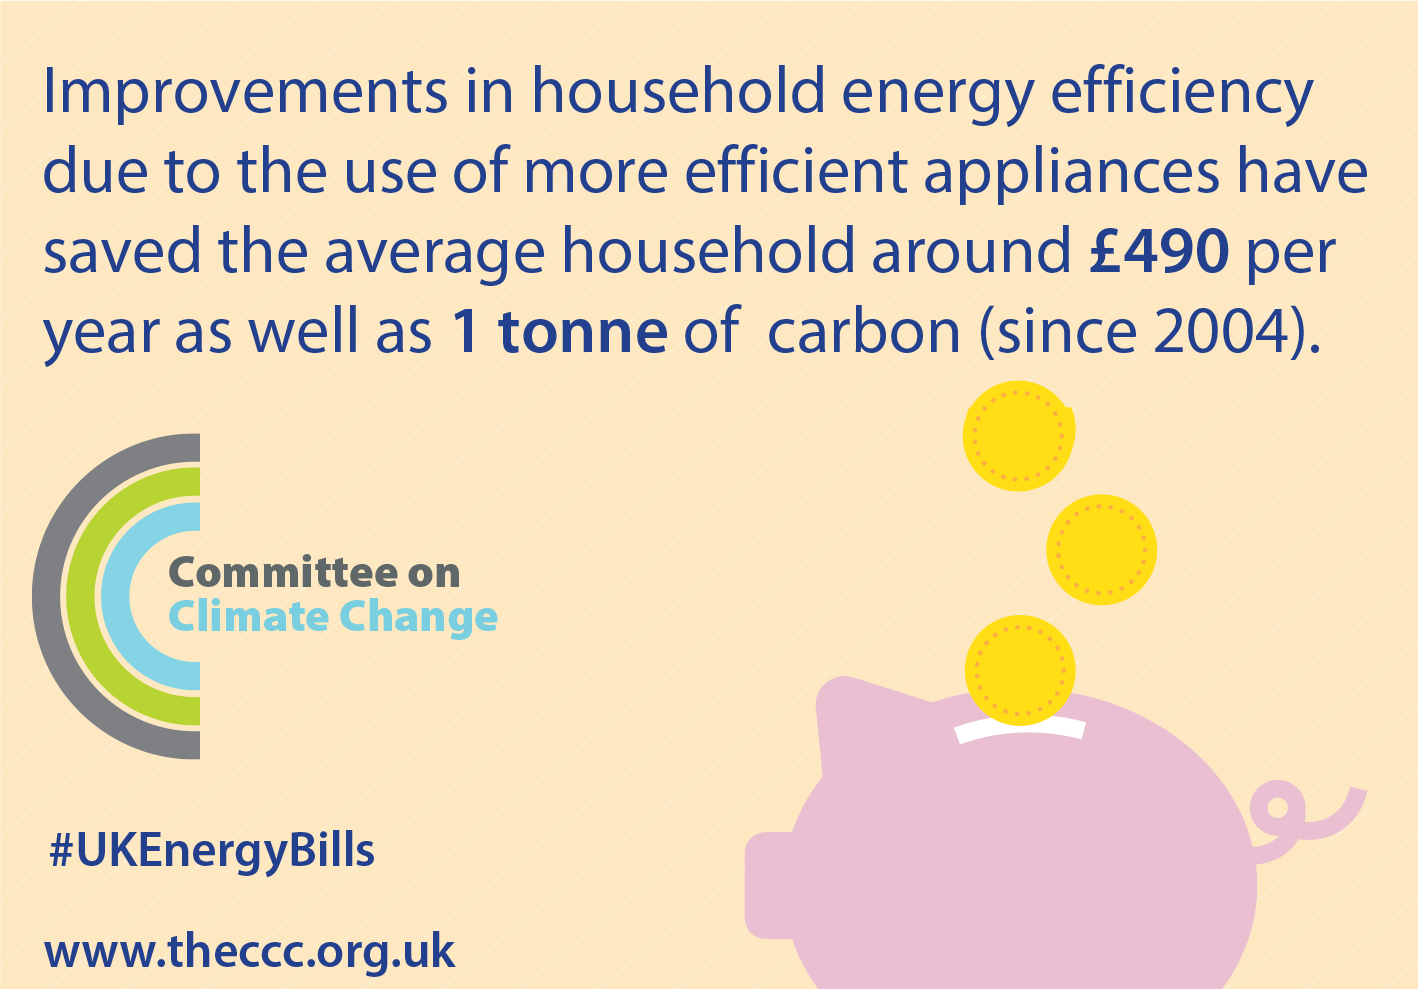 Improvements in energy efficiency have saved average UK household £490 /yr since 2004 >New CCC #ukenergybills report https://t.co/Ed5PzfAQwo https://t.co/YxmQMRt4au